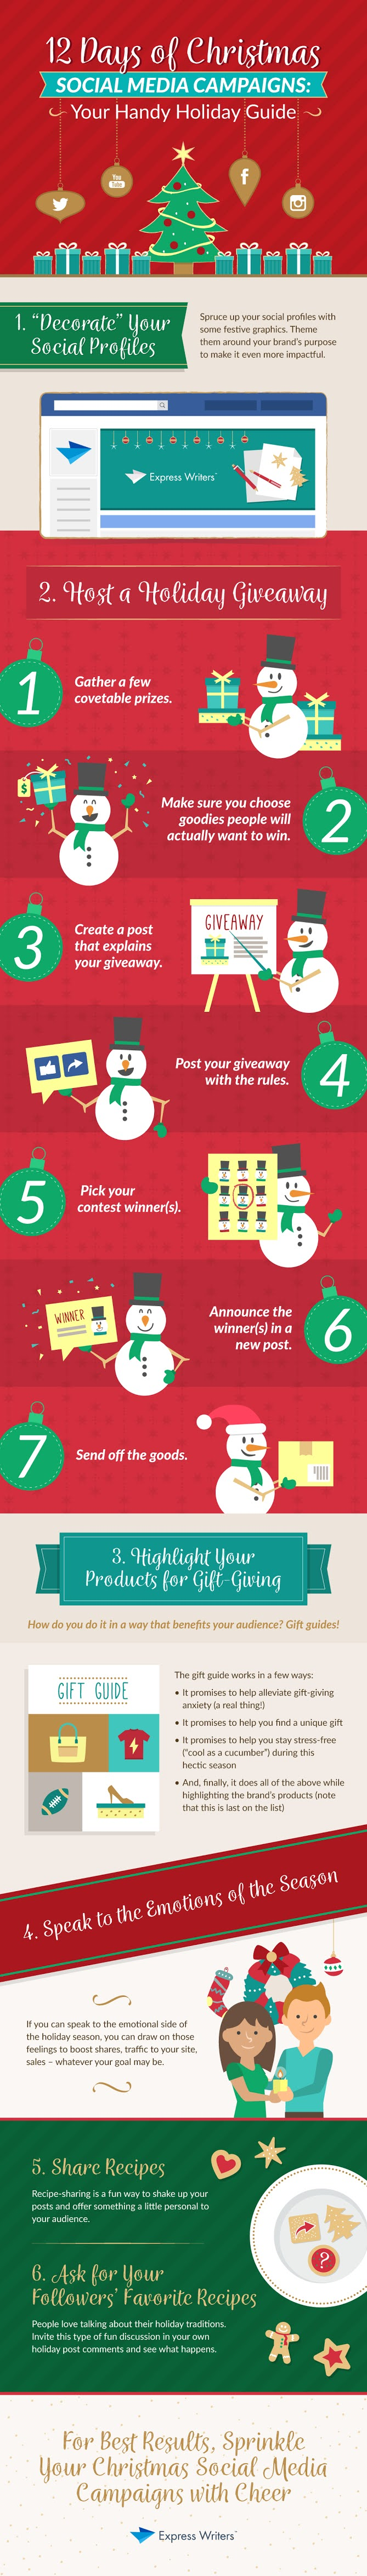 12 Days of Christmas Social Media Campaigns: Your Handy Holiday Guide #infographic #Holiday Guide #Christmas #Social Media #Christmas Social Media Campaigns #infographics